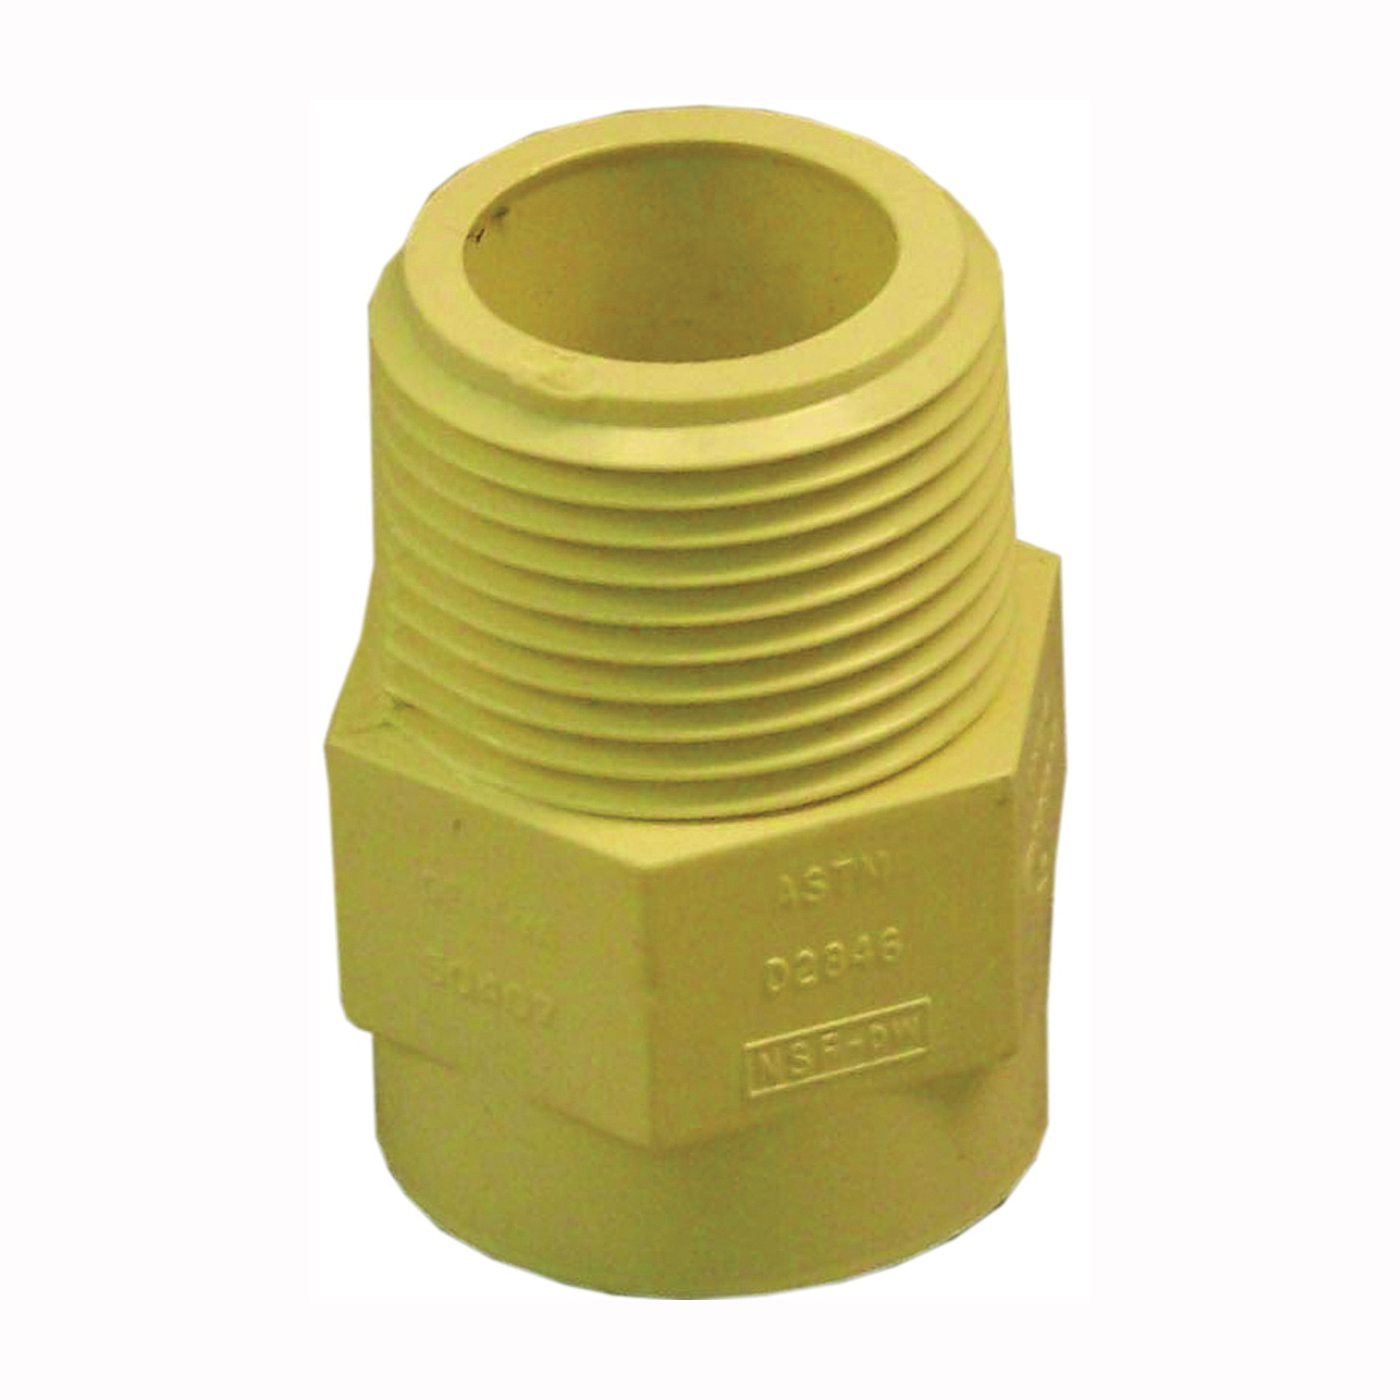 Picture of GENOVA 500 50407 Male Adapter, 3/4 in, MIP x Slip, CPVC, 100 psi Pressure